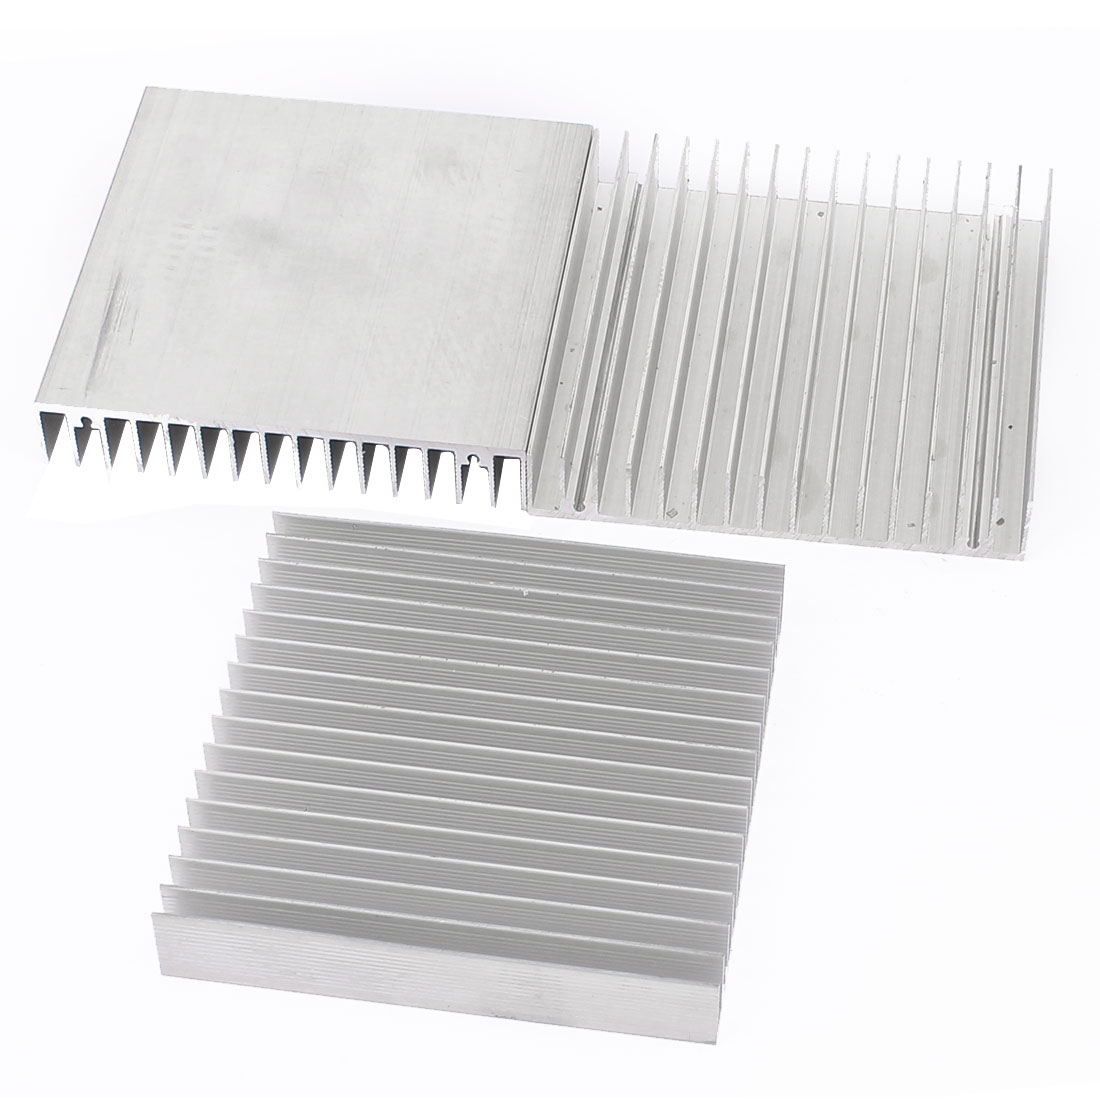 3Pcs Silver Tone Square Aluminium Radiator Heatsink Heat Sink 100 x 100 x 18mm